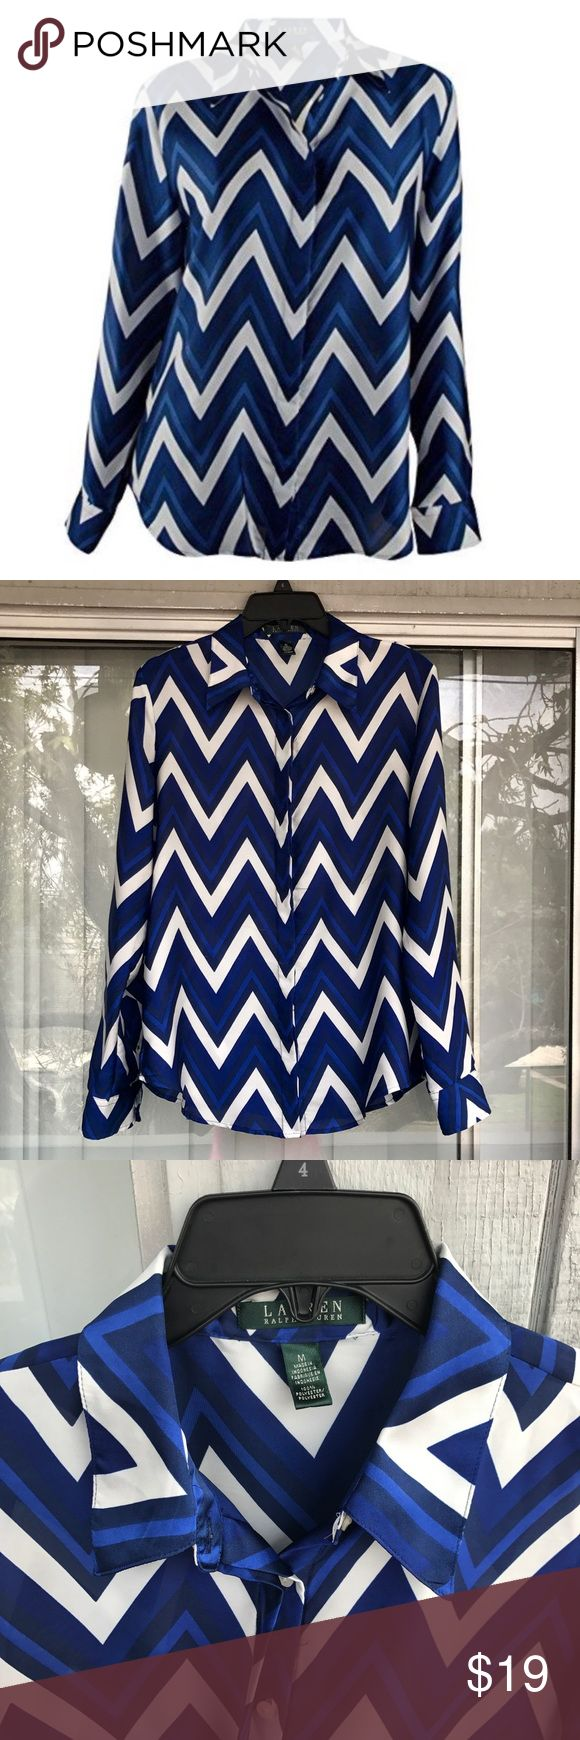 """Ralph Lauren Chevron Print Work Office Shirt M 🔹 Bundle with other work clothes and save 🔹  Crafted from smooth polyester, Lauren Ralph Lauren's lightweight blouse features a trendy chevron print. Great for professional or business casual look over skinny jeans..     Length: 25"""" Color: Cobalt/Navy multi Point collar  Concealed buttoned placket  Long sleeves with buttoned barrel cuffs  Machine wash.    USED Small iron dent - not visible when worn (see last photo) Loose fabric pulling on…"""